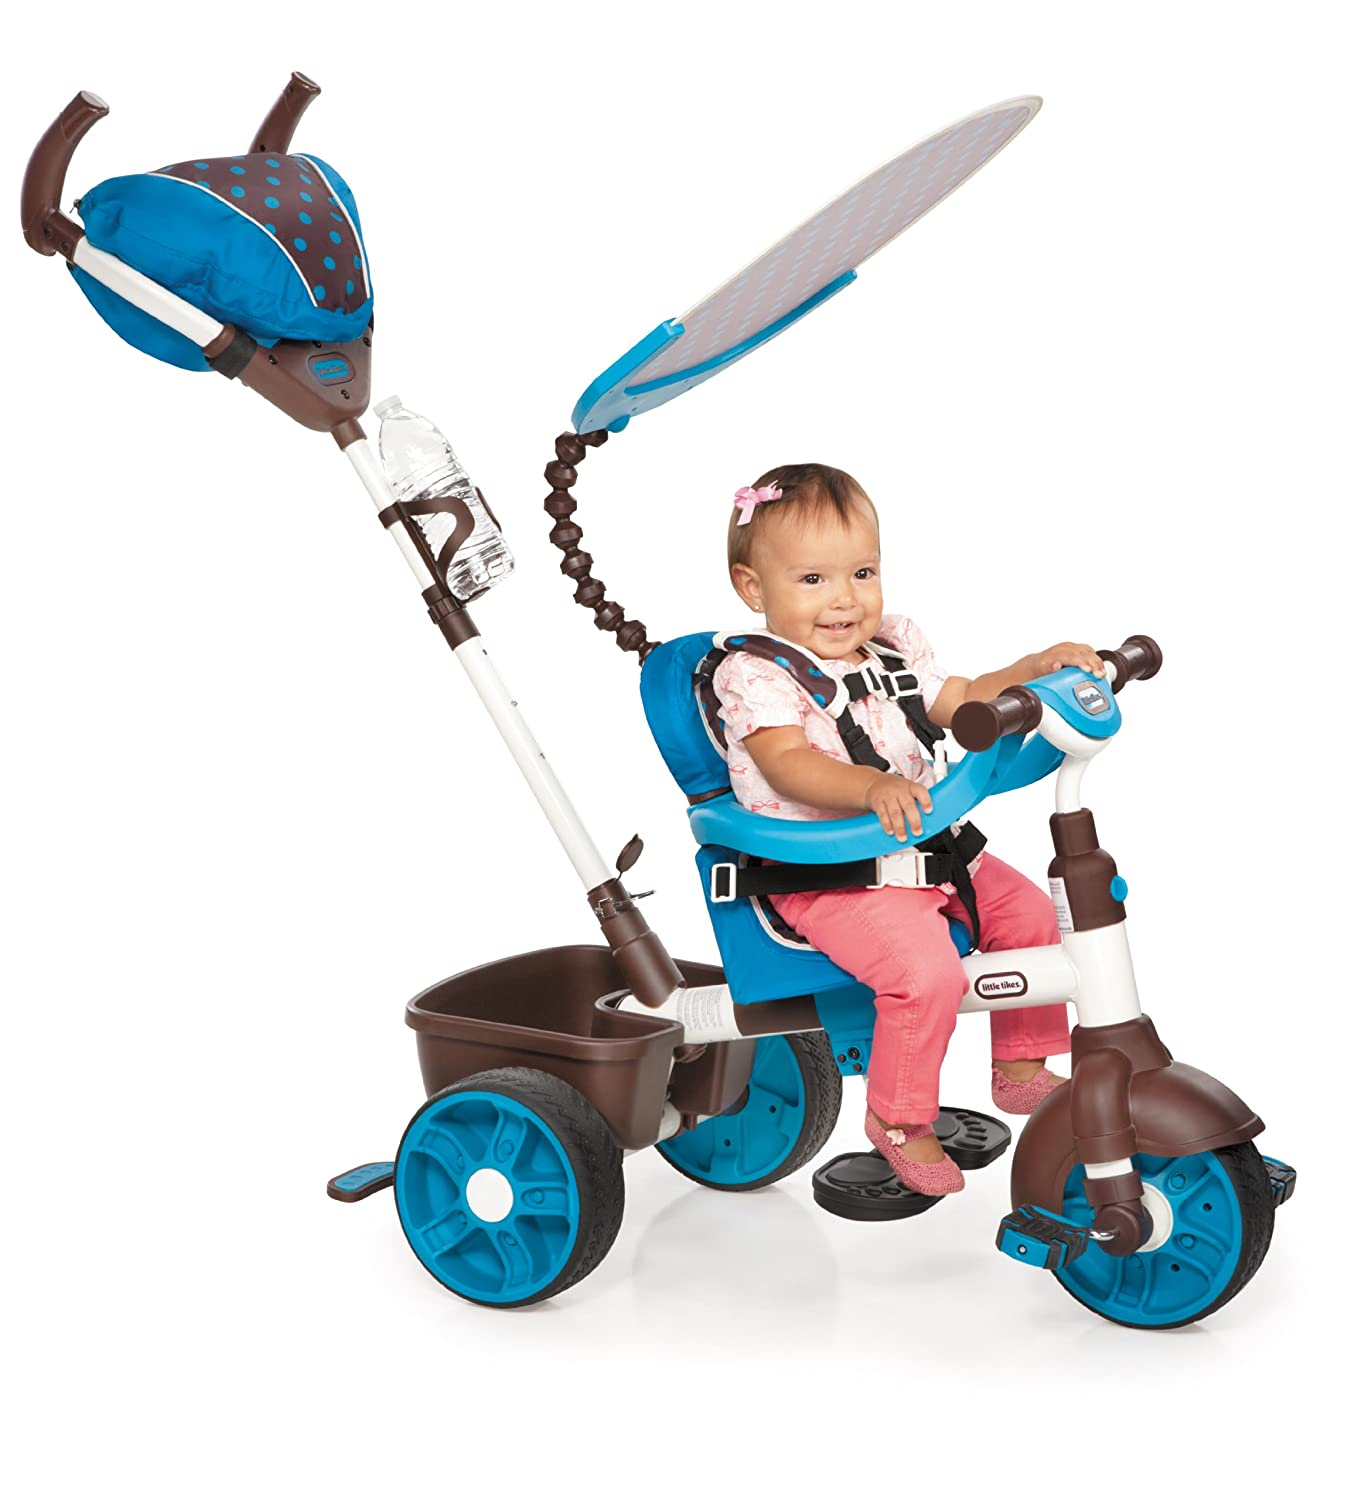 $98.46(was $171) Little Tikes 4-in-1 Trike Ride On, Blue/White, Sports Edition